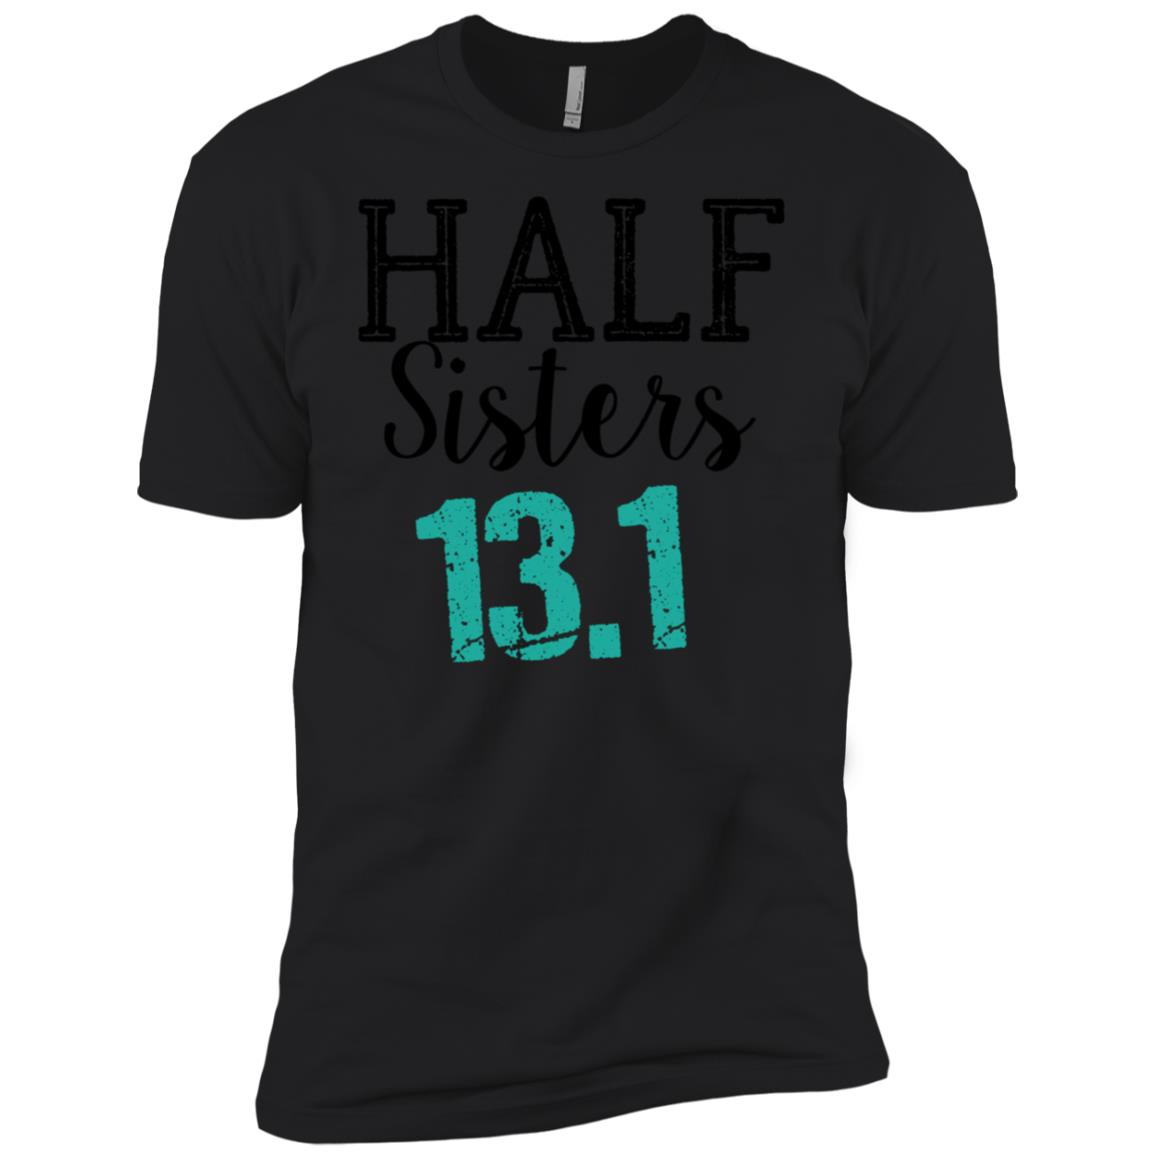 Half Marathon Sisters 13.1 Running Men Short Sleeve T-Shirt